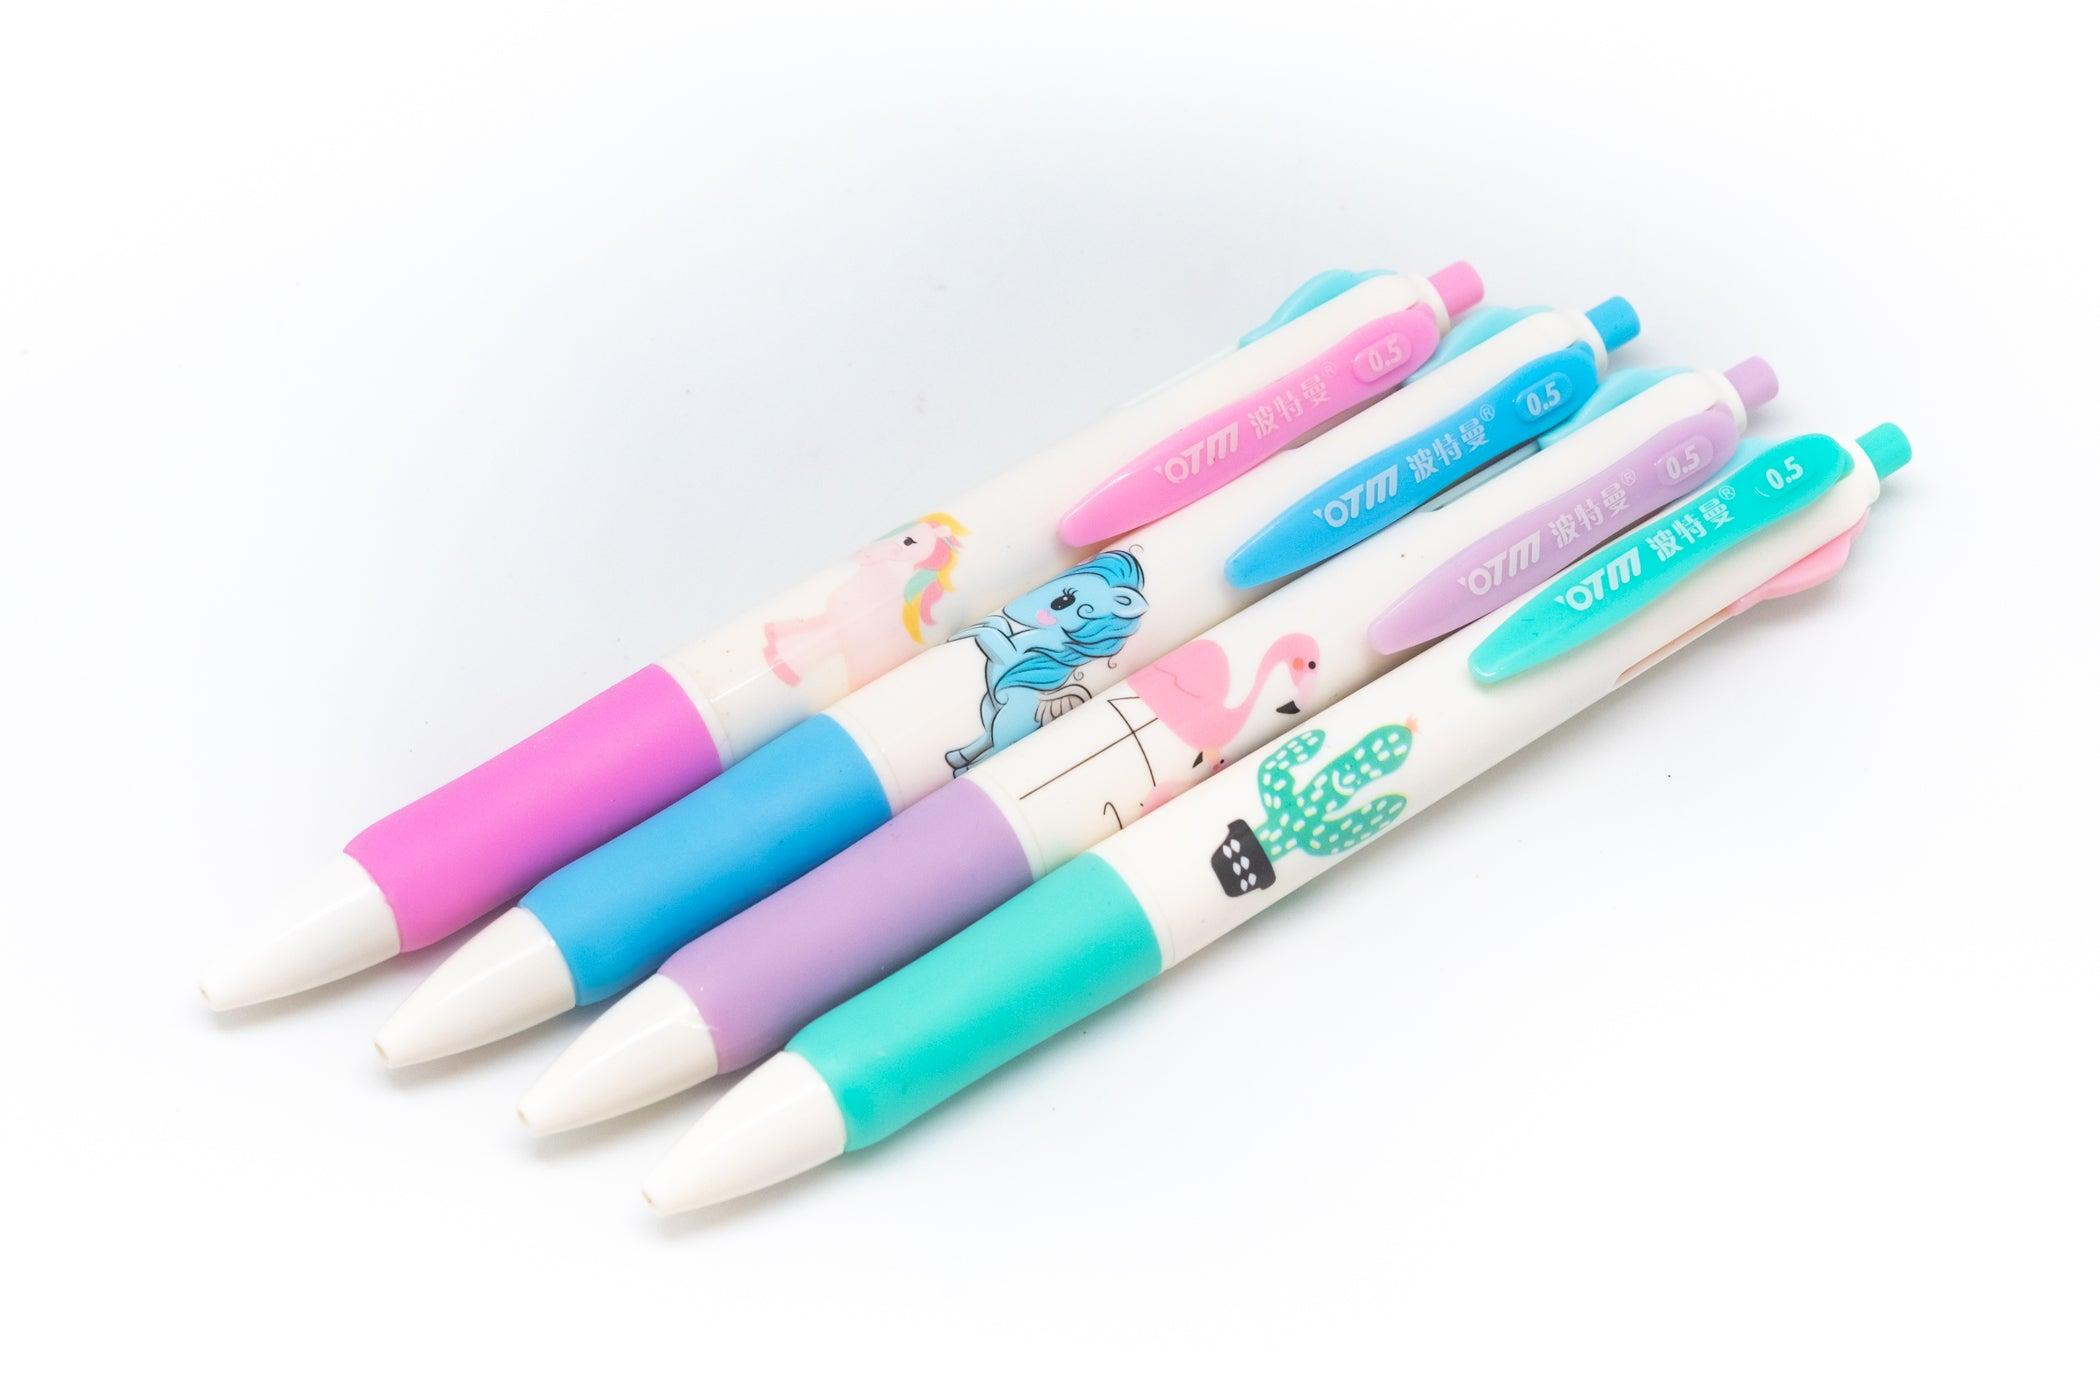 4 Colour Whimsical Design Pen